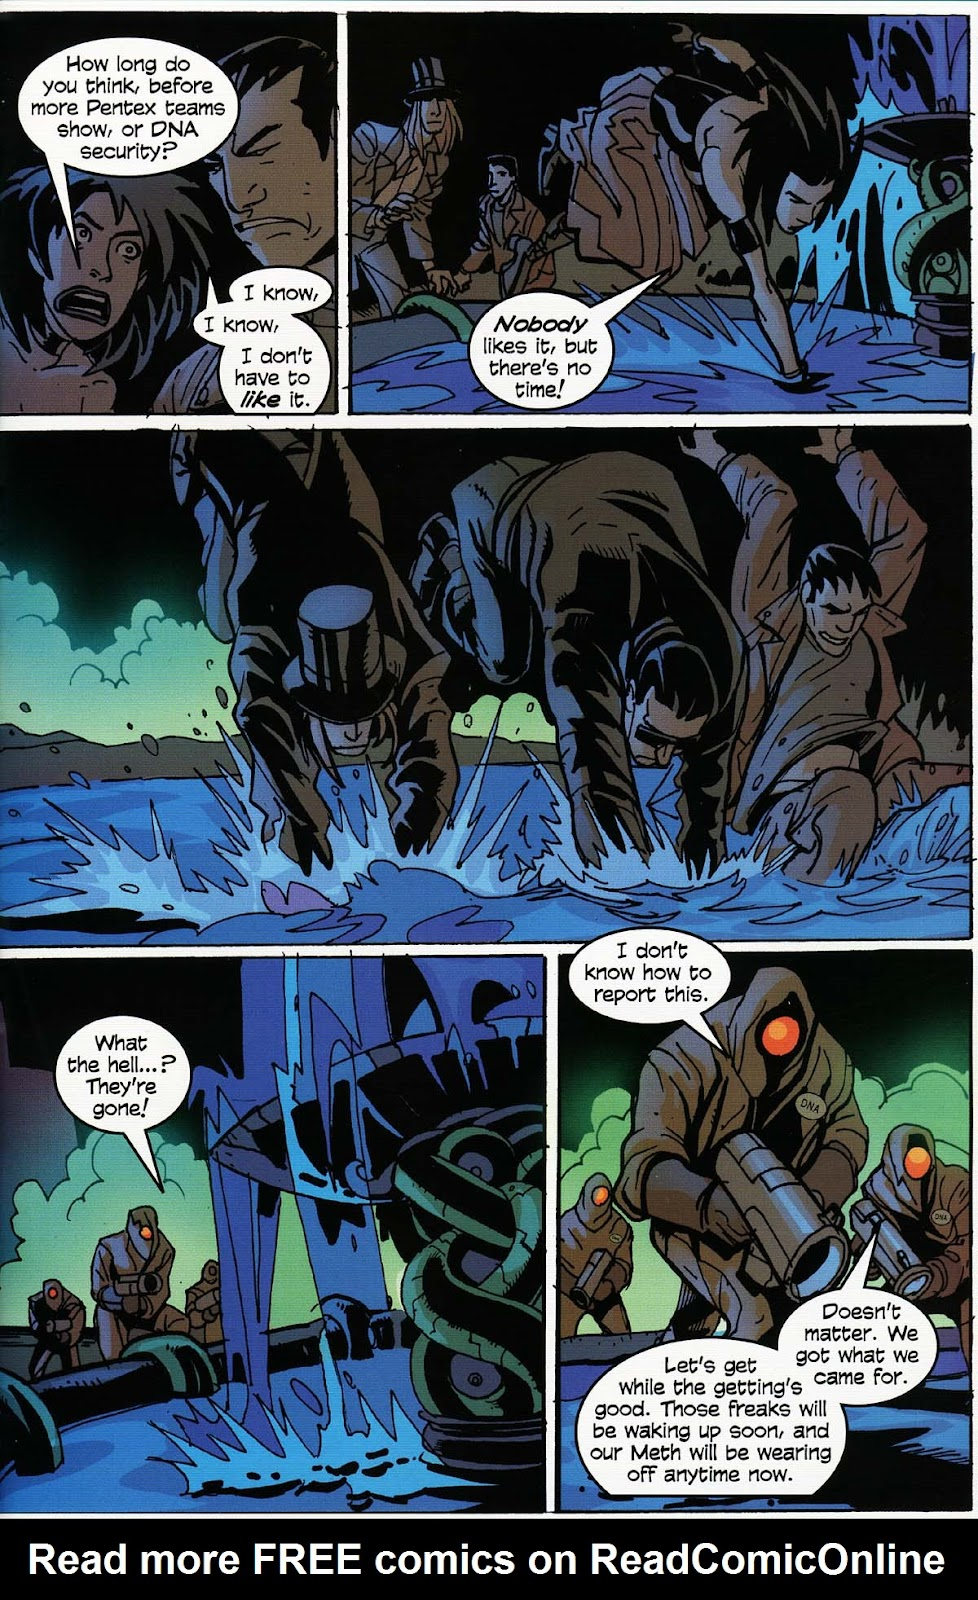 Read online Werewolf the Apocalypse comic -  Issue # Bone Gnawers - 47